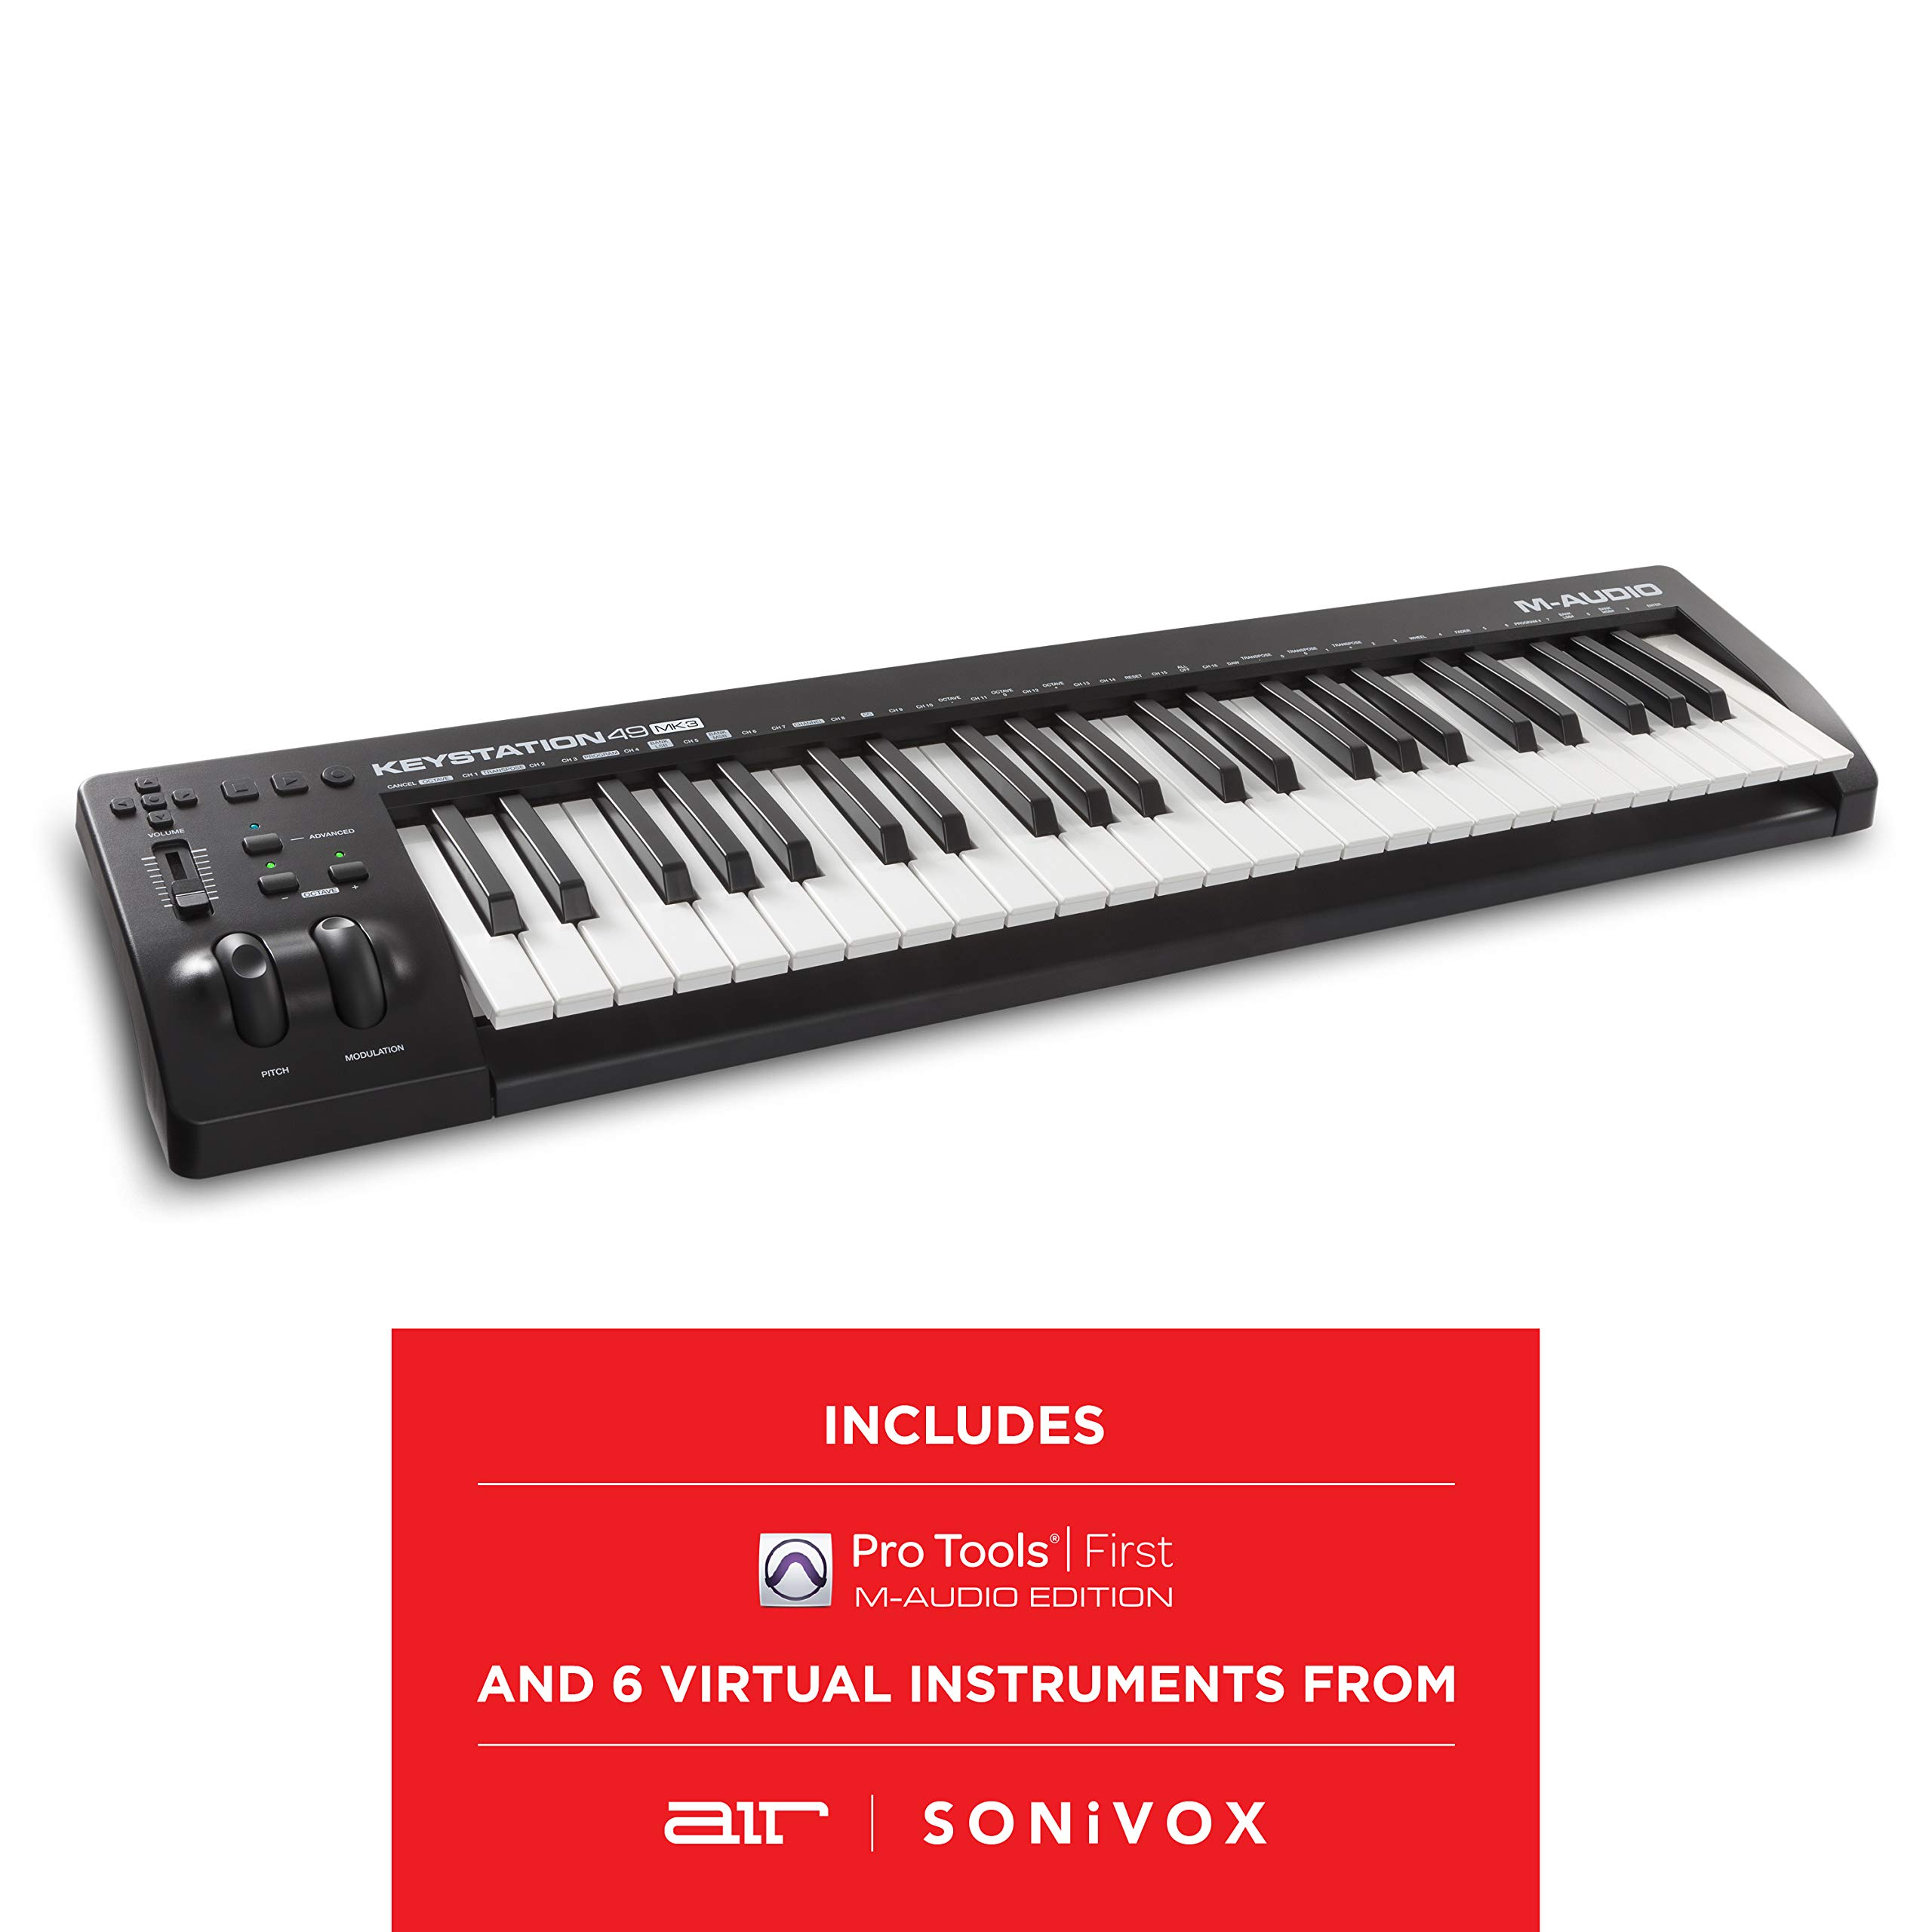 M Audio Keystation 49 MK3 | Compact Semi Weighted 49 Key MIDI Keyboard Controller with Assignable Controls, Pitch / Modulation Wheels and Software Production Suite included USB Powered by M-Audio